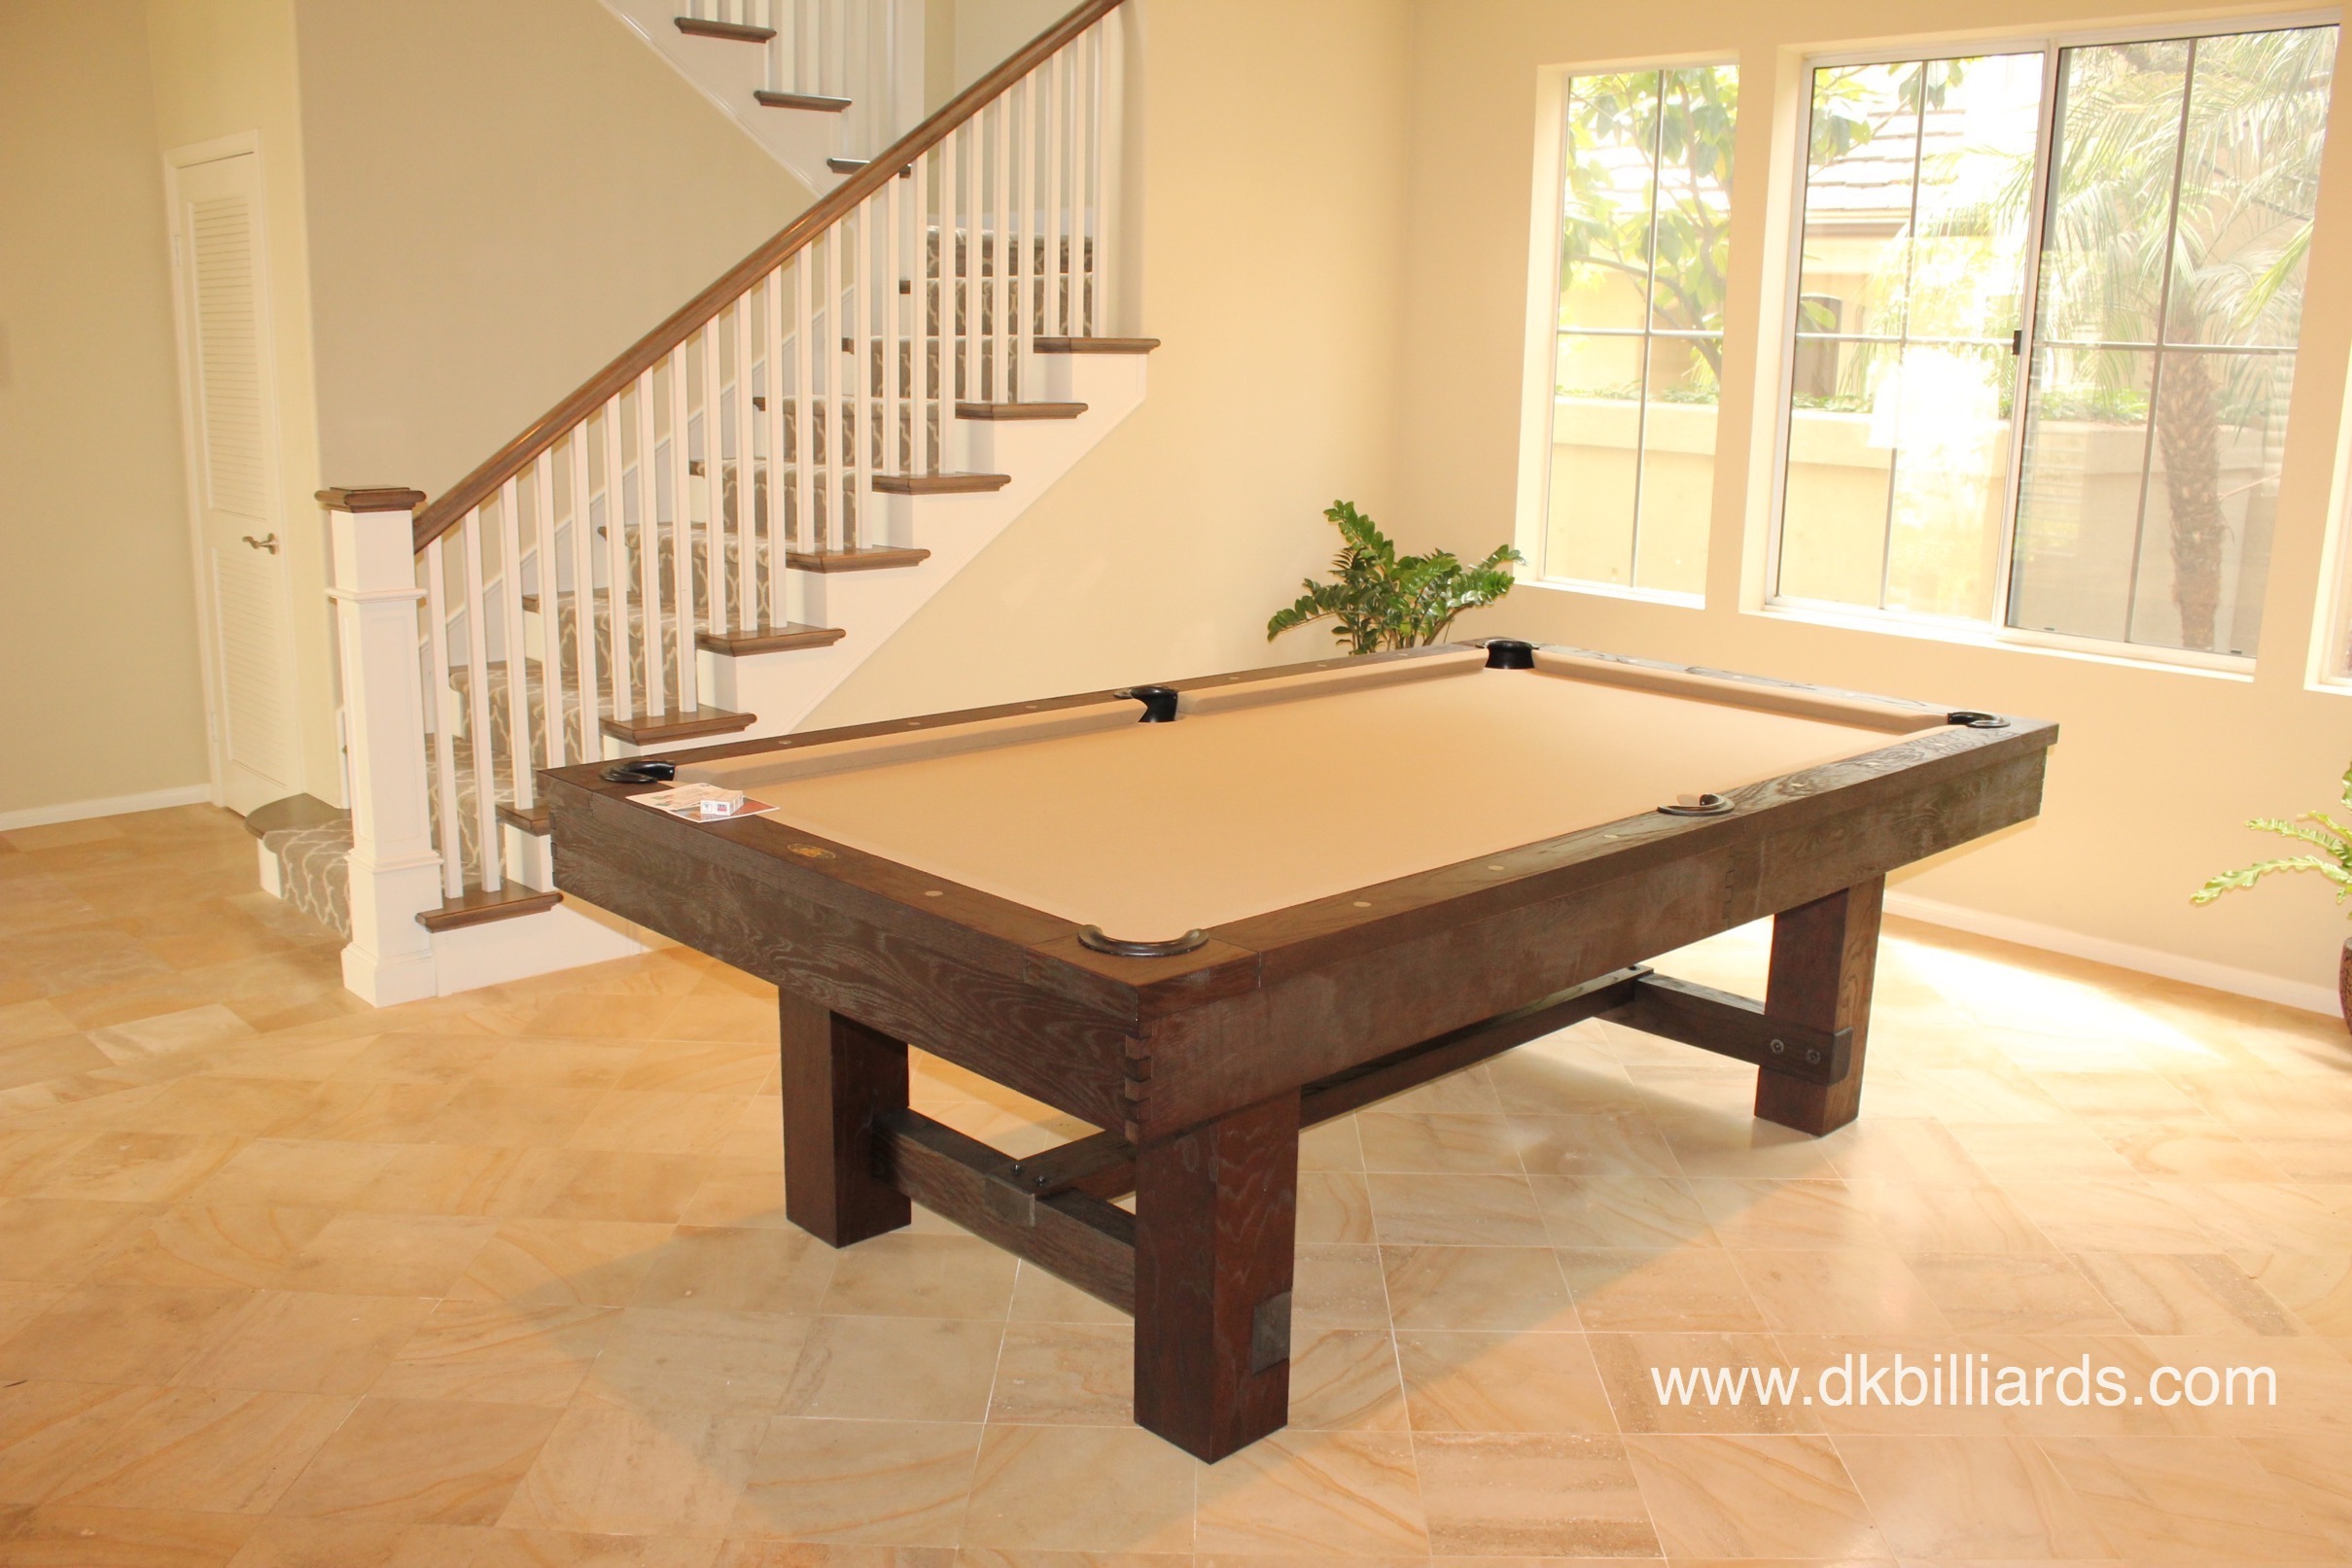 How To Move A Slate Pool Table Across The Room